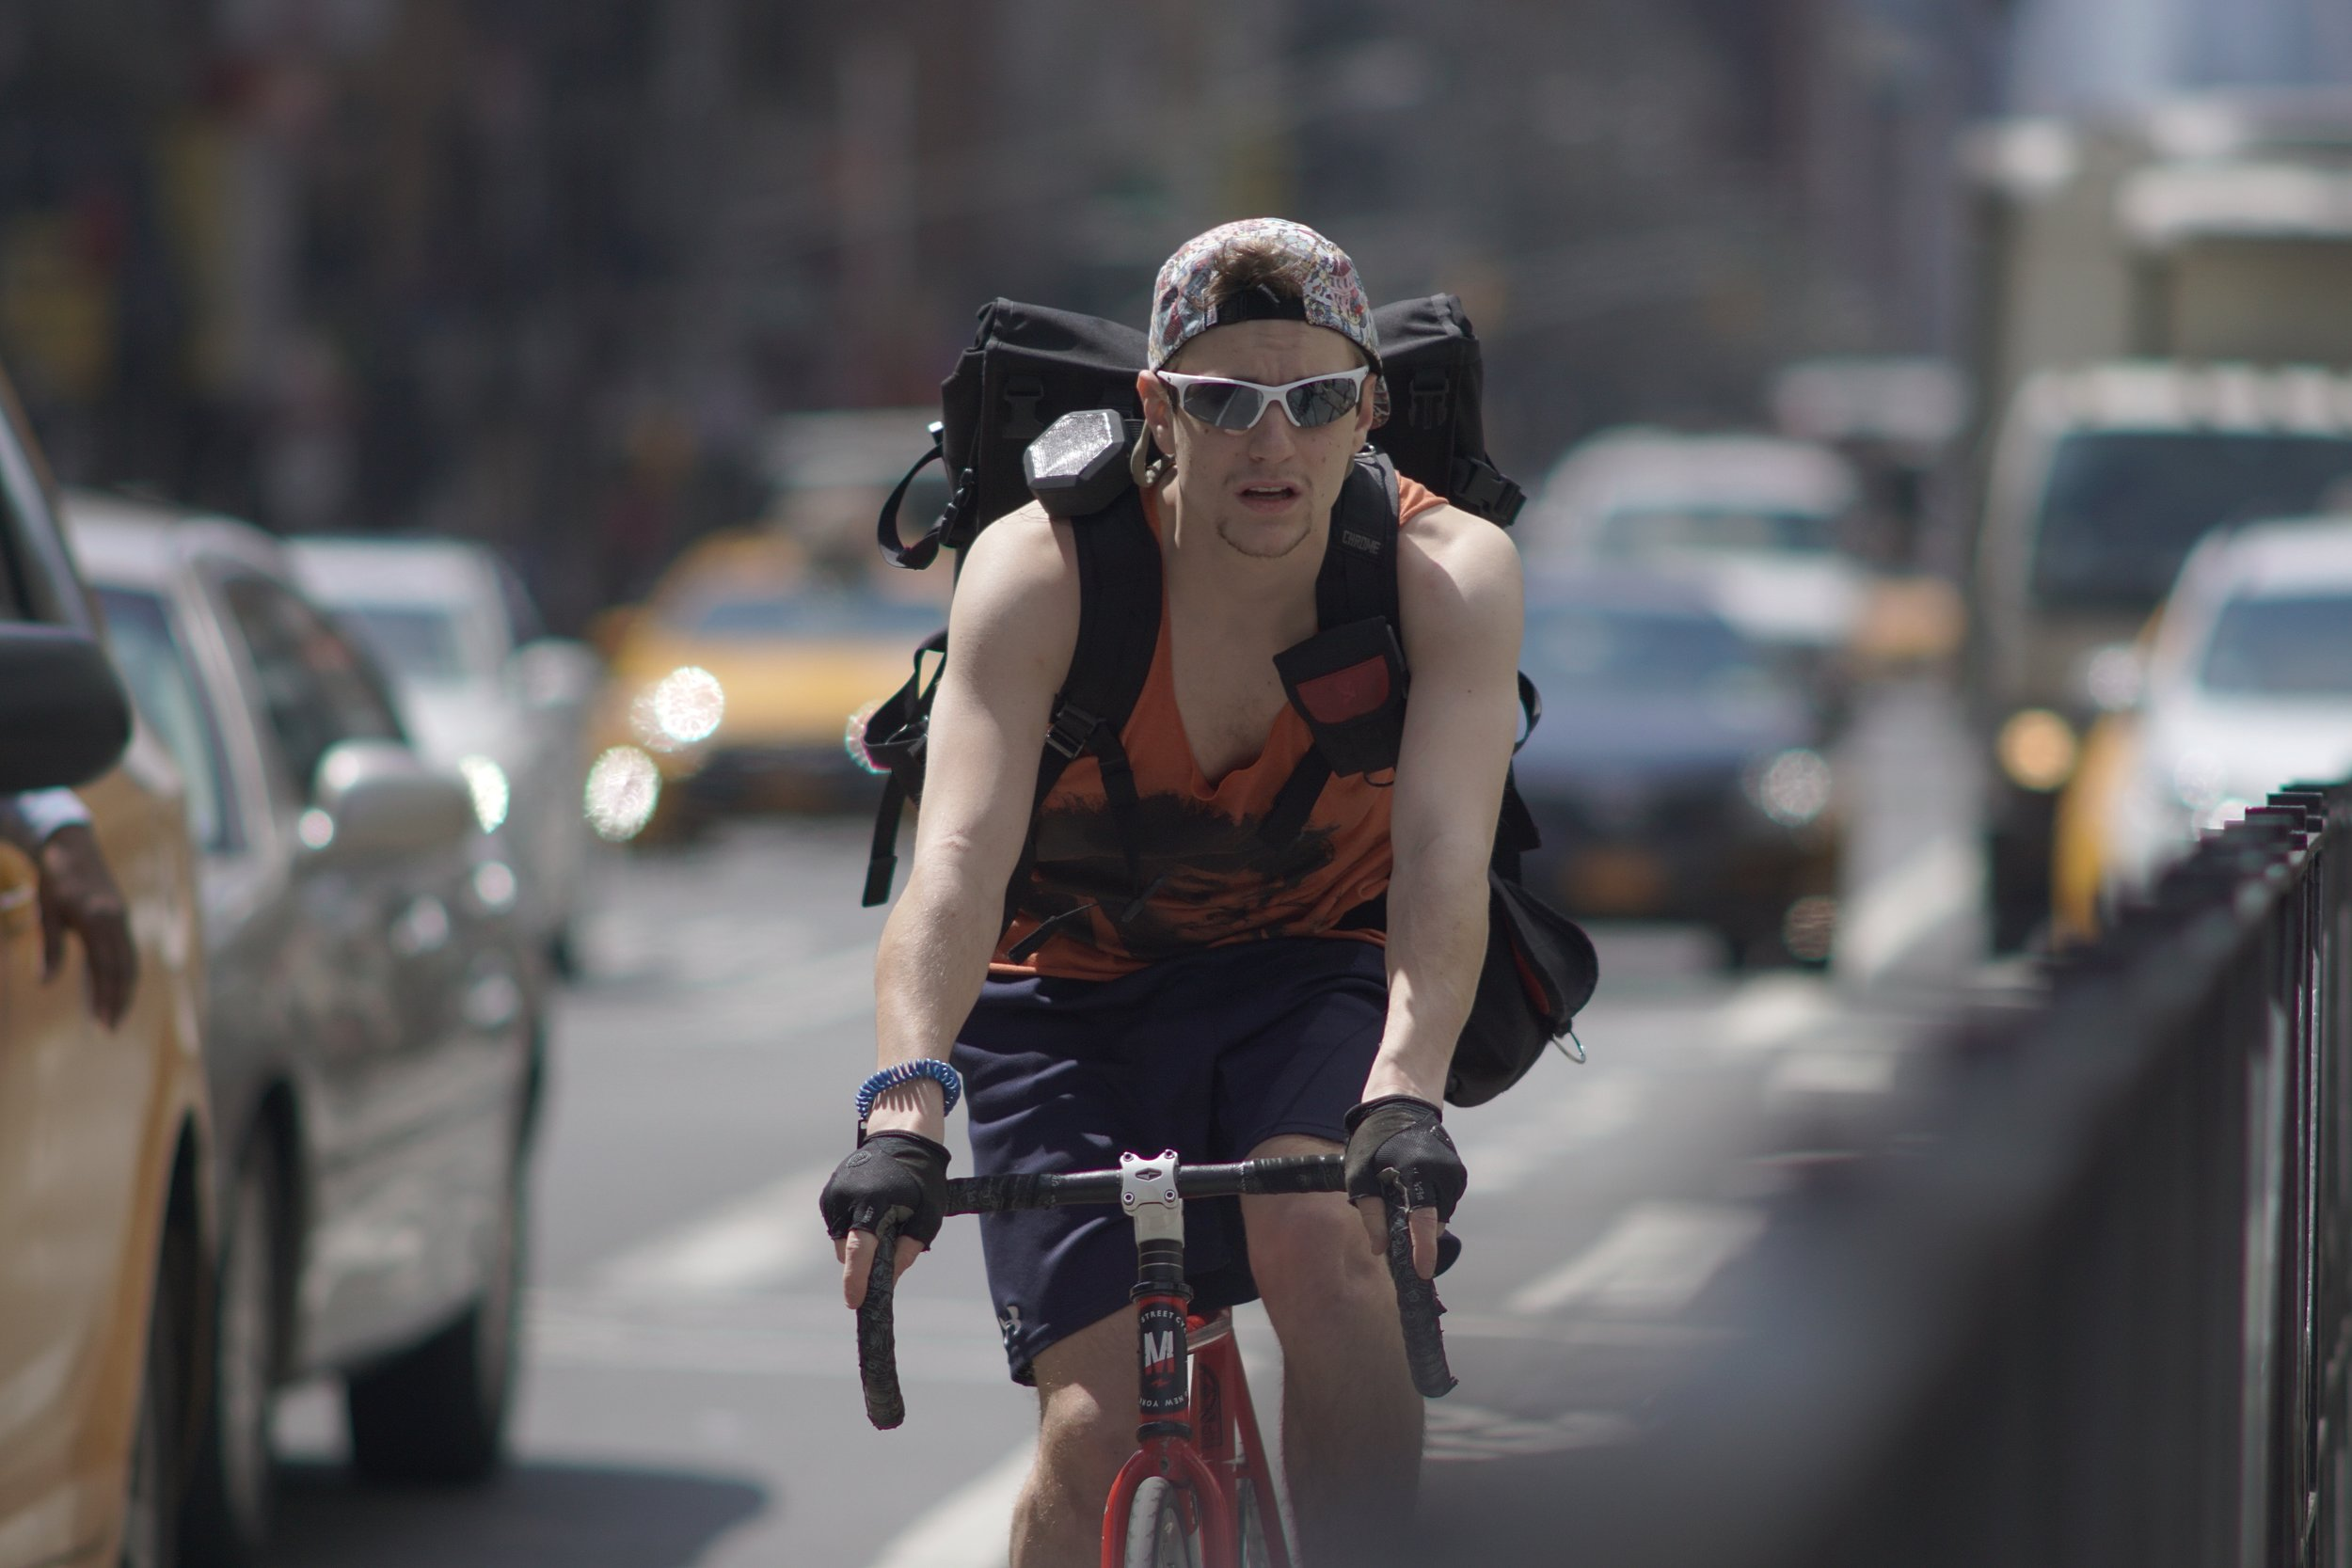 Street Photography with A Telephoto Lens, bike messenger